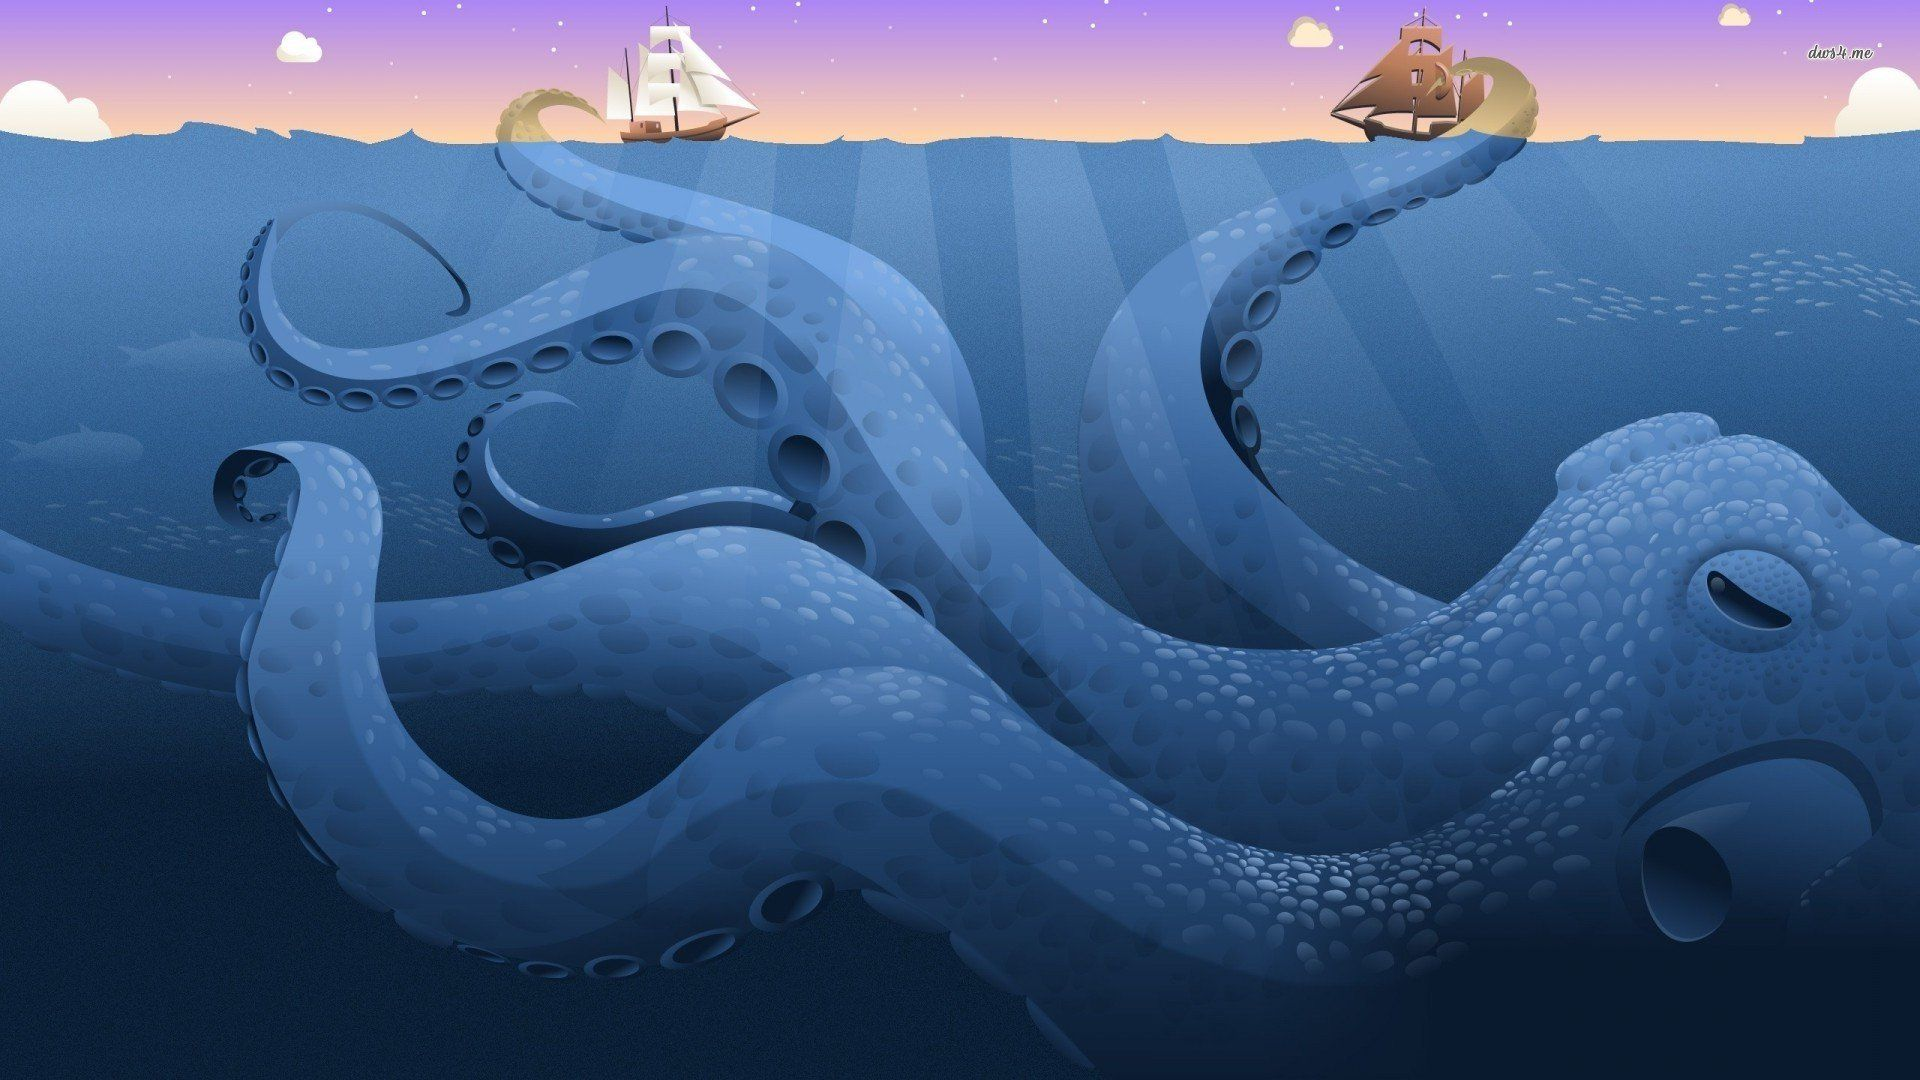 Giant Octopus Ing The Ships Digital Art Hd Desktop Wallpaper Ocean Ship No